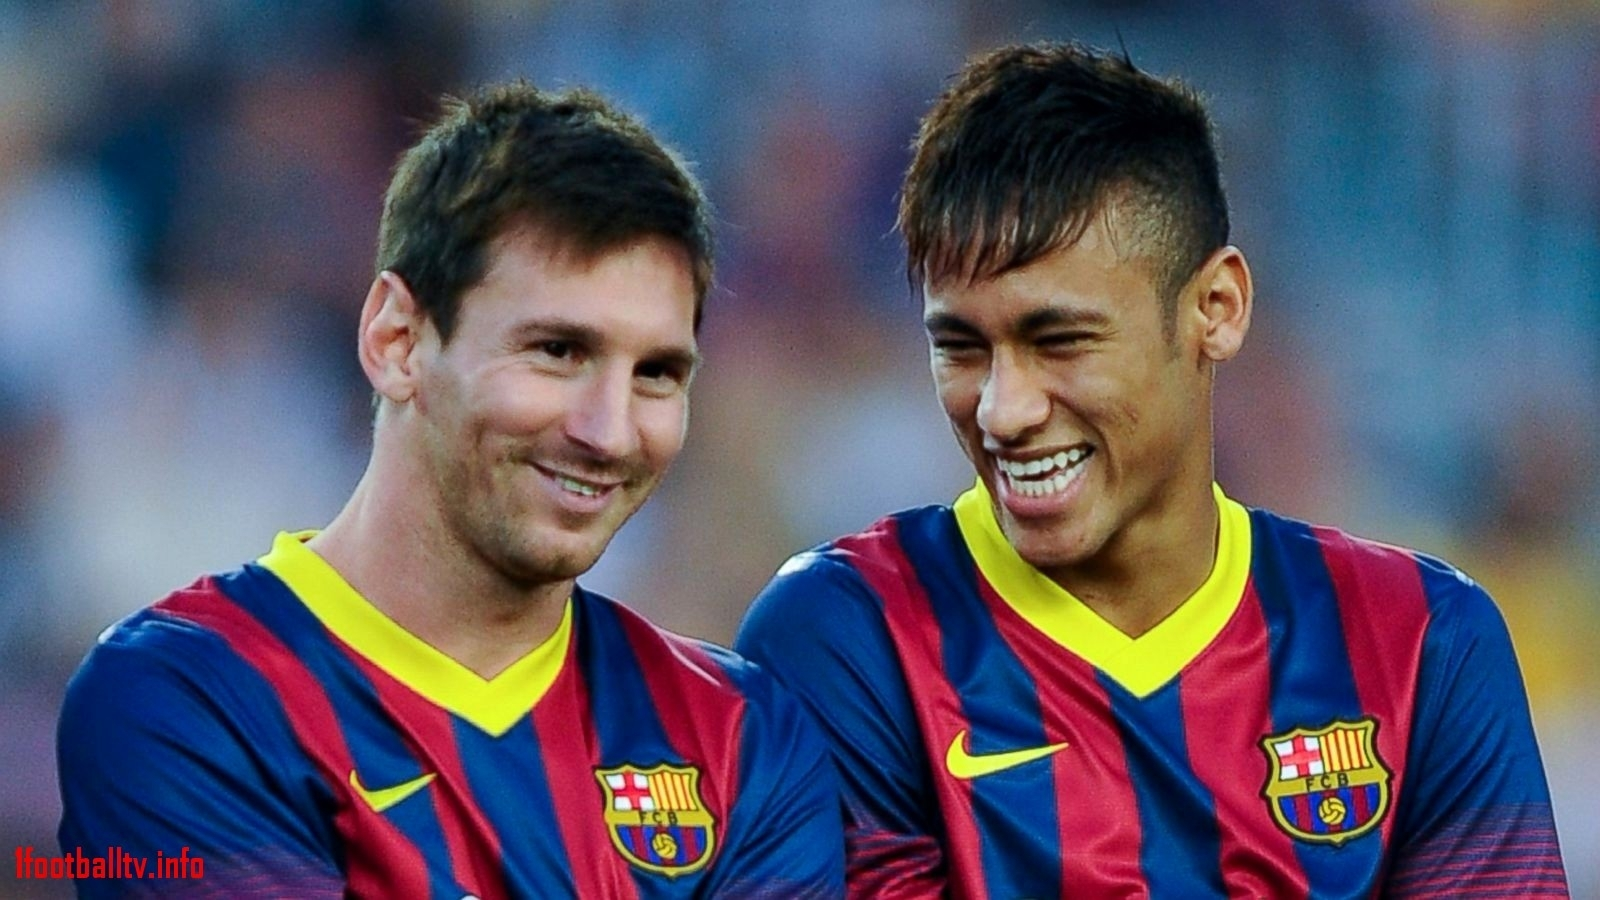 new lionel messi and neymar wallpaper 2014 - best football hd wallpapers